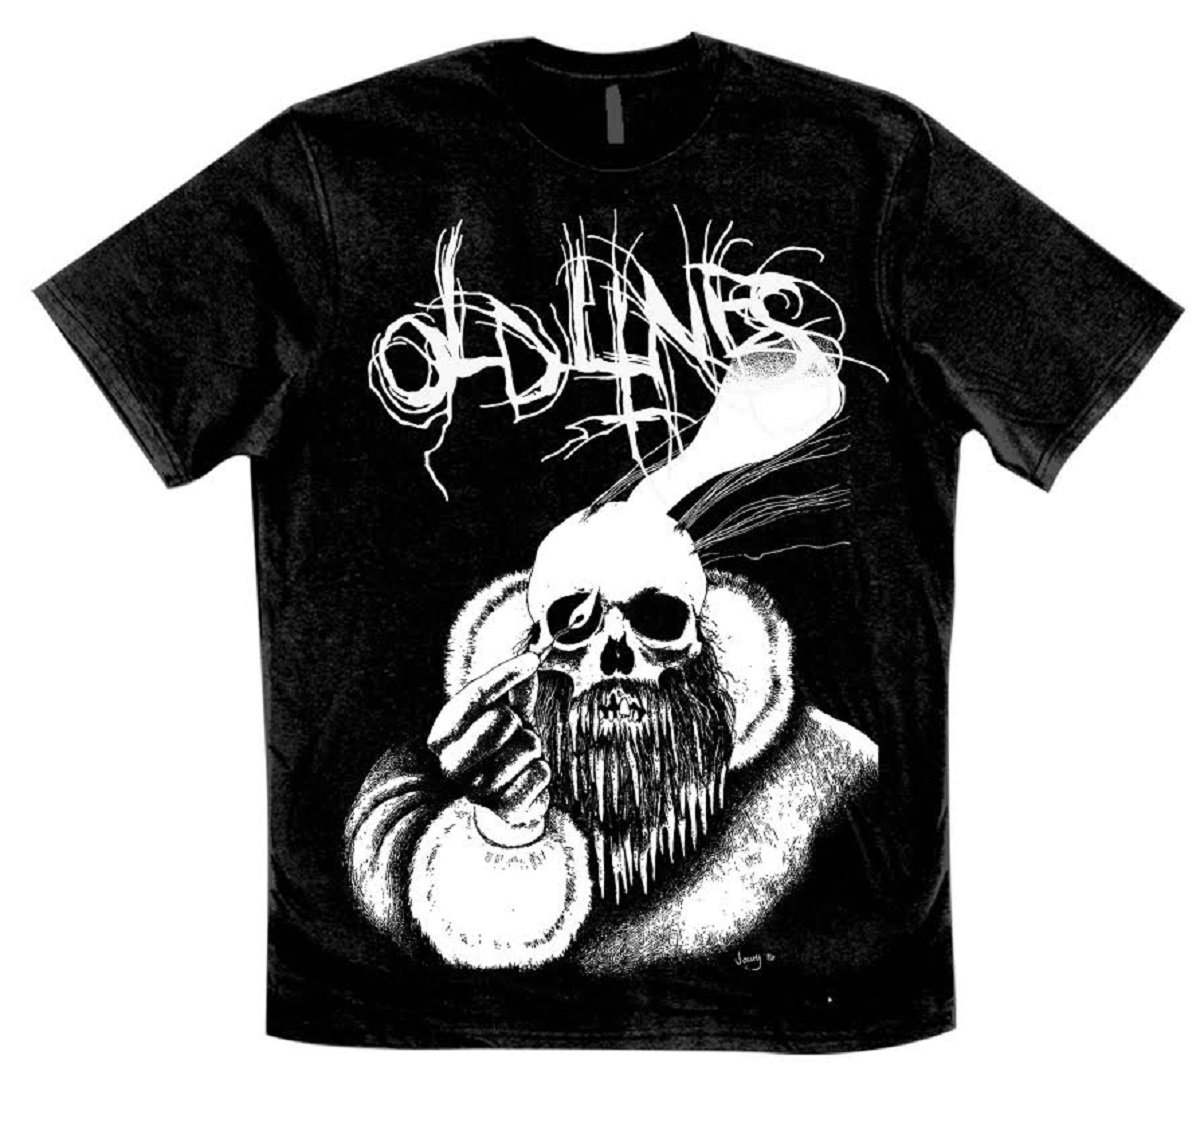 Design your own t shirt free download - T Shirt Designed By Joshy Of Ilsa Integrity Includes Unlimited Streaming Of To Build A Fire Via The Free Bandcamp App Plus High Quality Download In Mp3